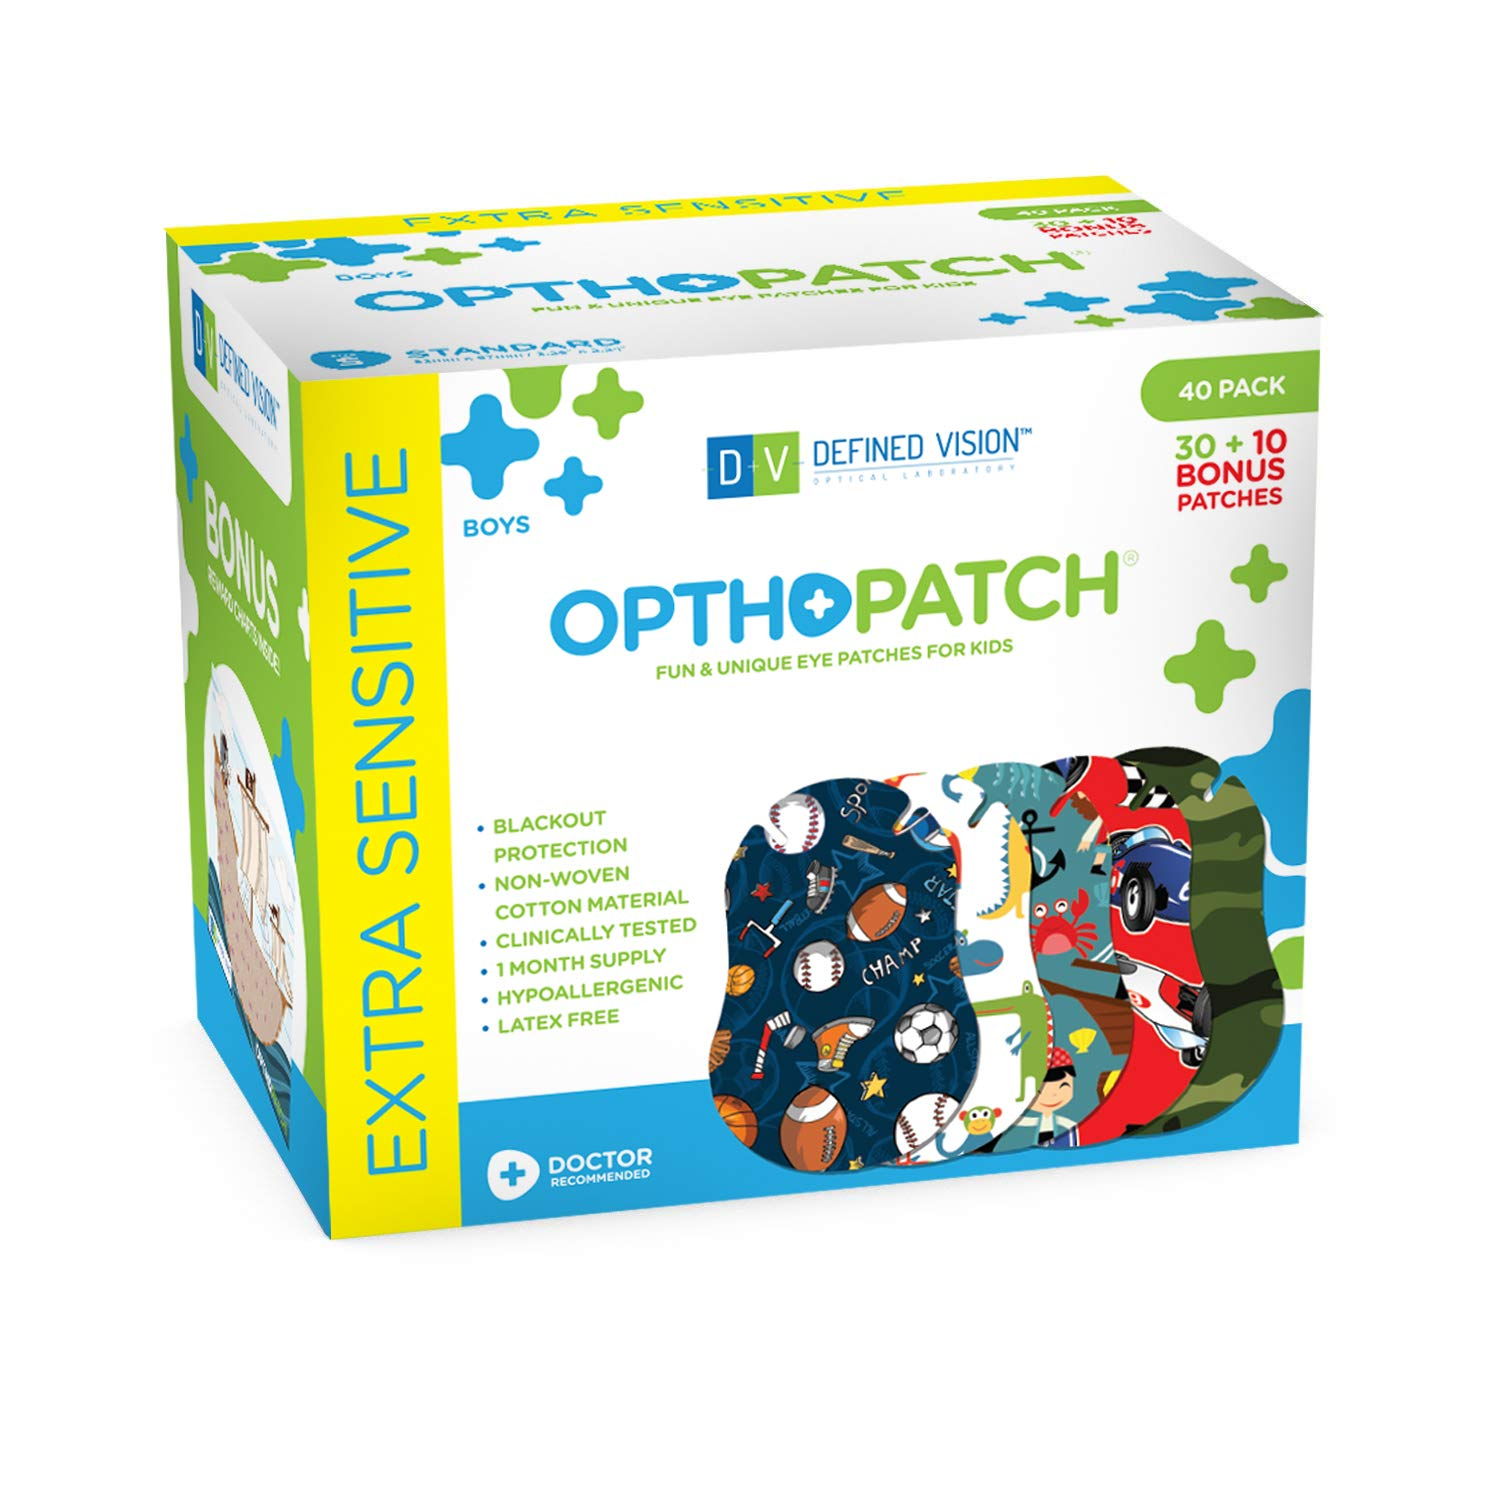 Opthopatch Kids Eye Patches - Fun Boys Design - 30 + 10 Bonus Latex Free Hypoallergenic Cotton Adhesive Bandages for Amblyopia and Cross Eye - 2 Reward Chart Posters by Defined Vision